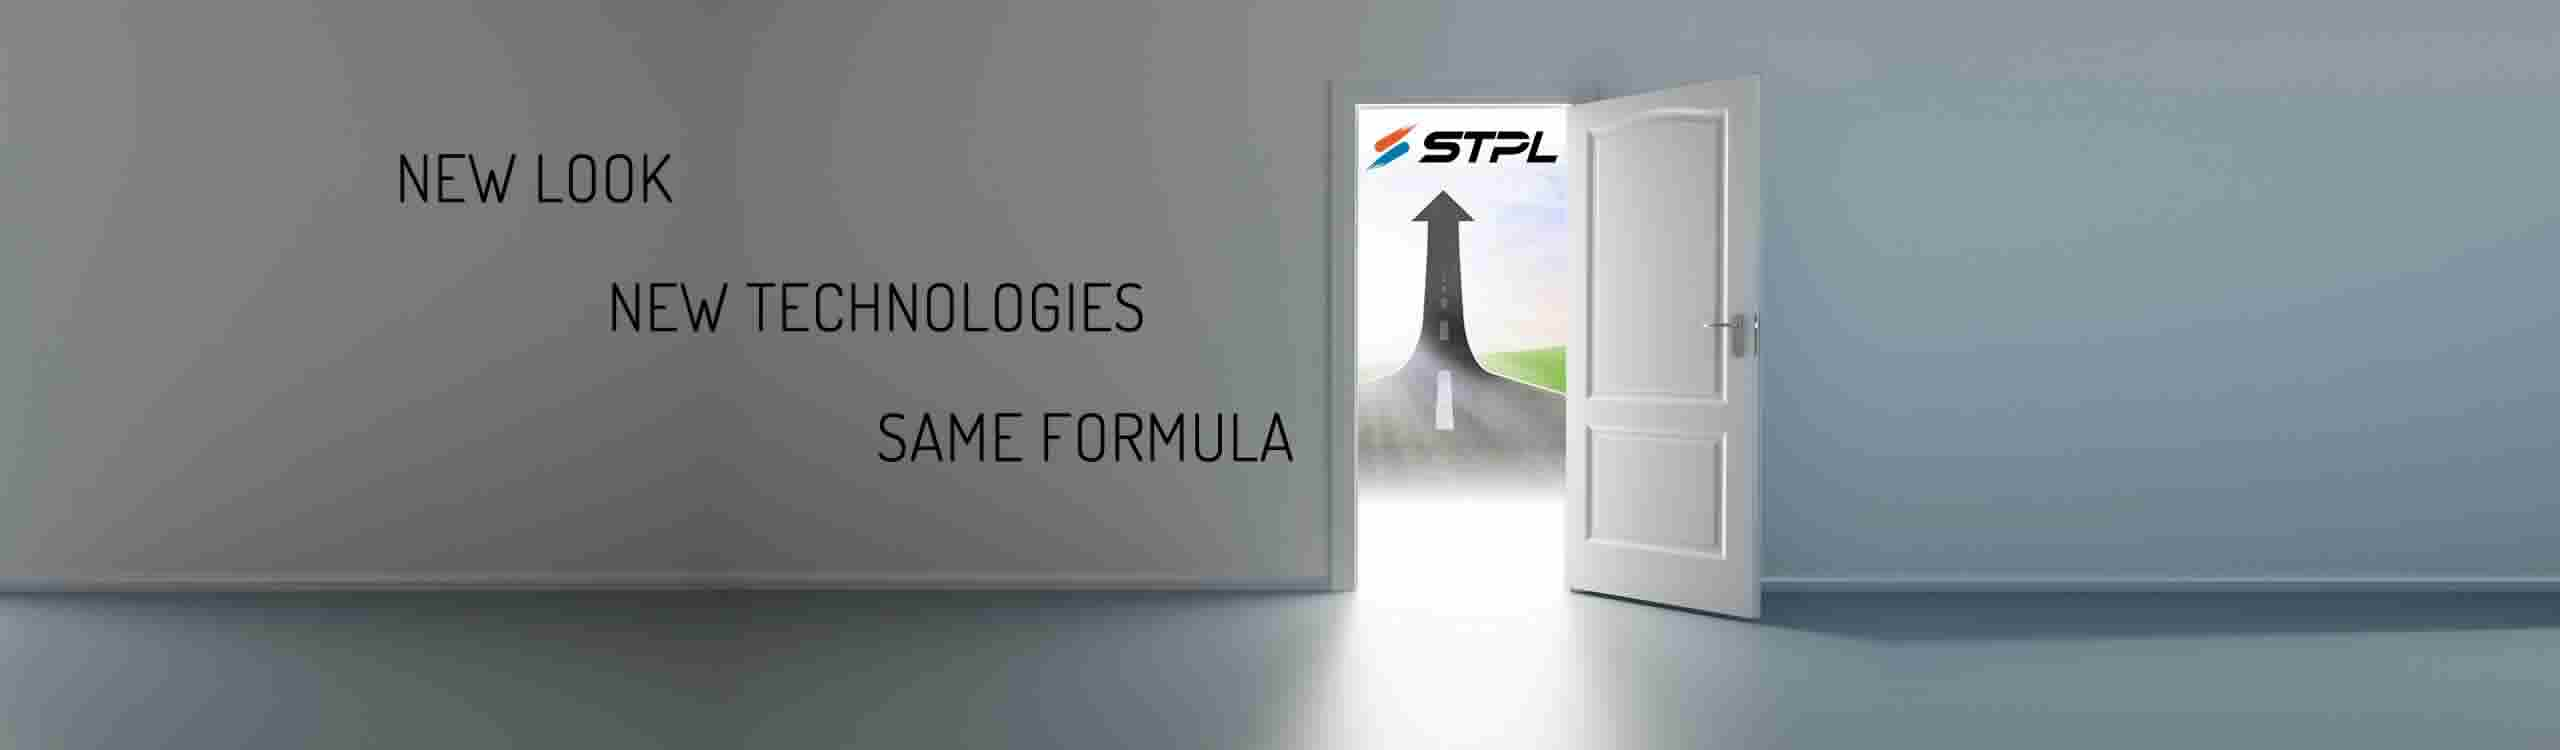 STPL Logo, sawing machine